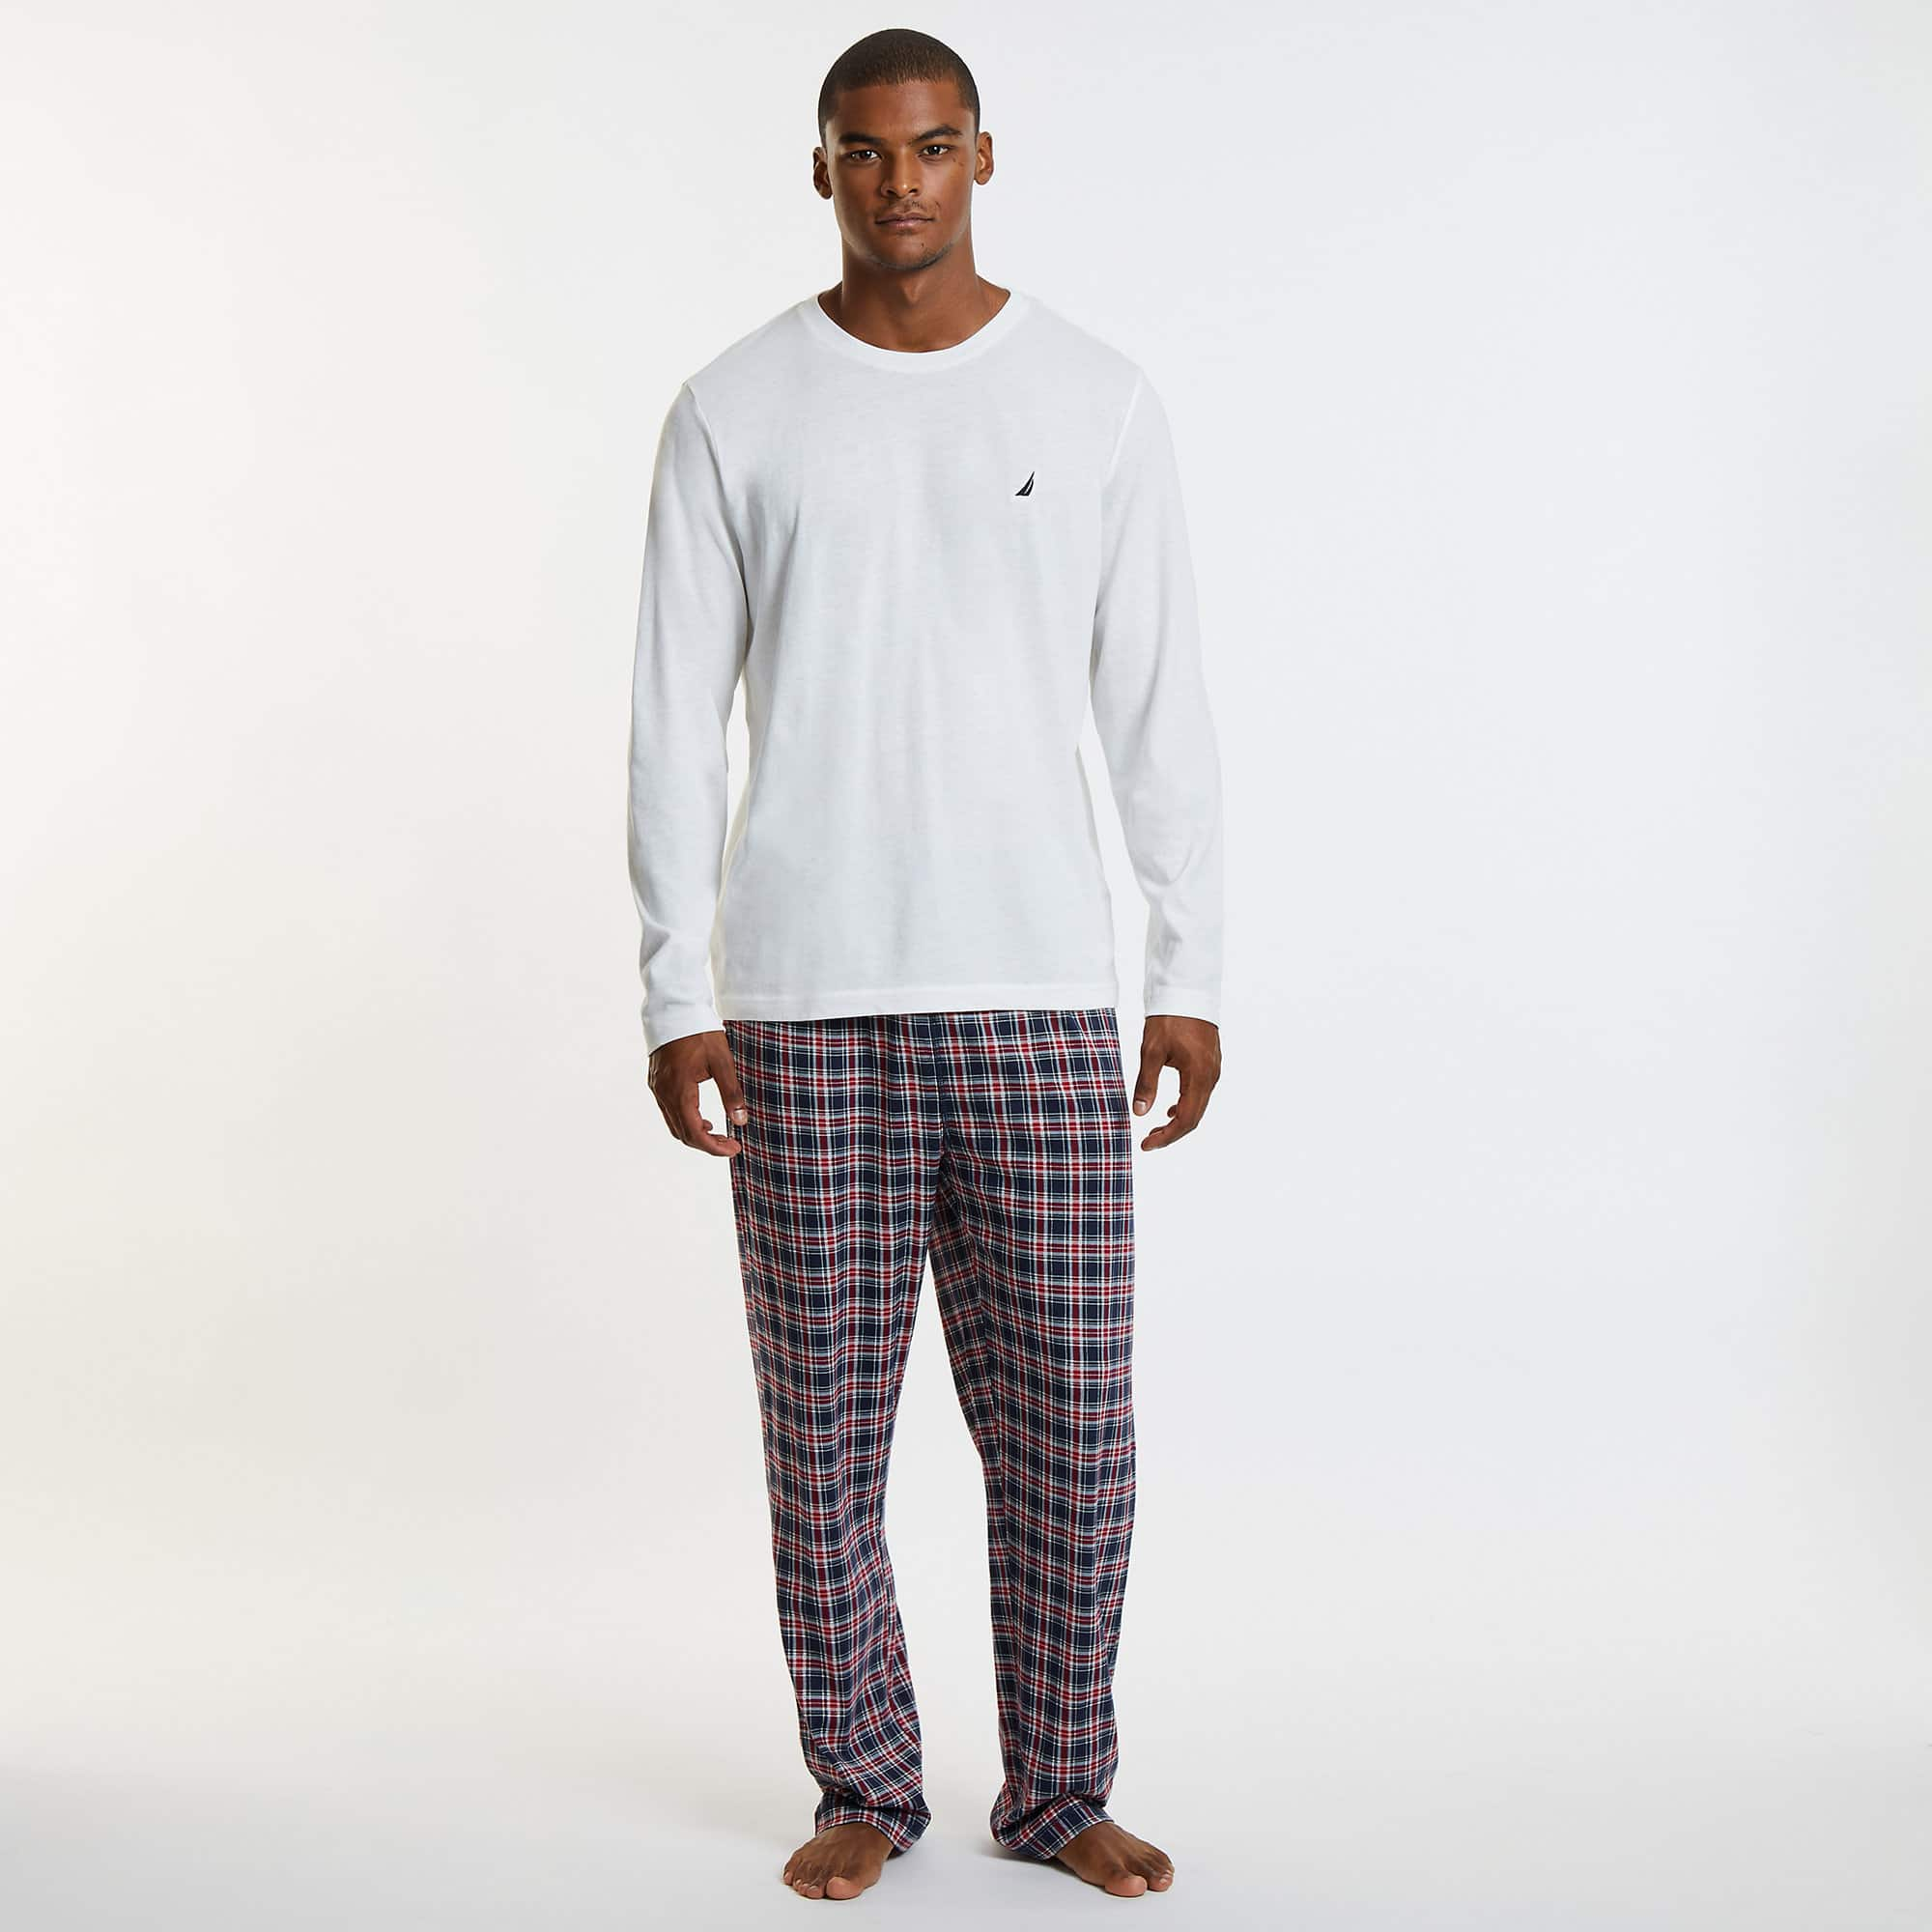 Men's Nautica Pajama Set $14.99 at eBay w/ Free Shipping